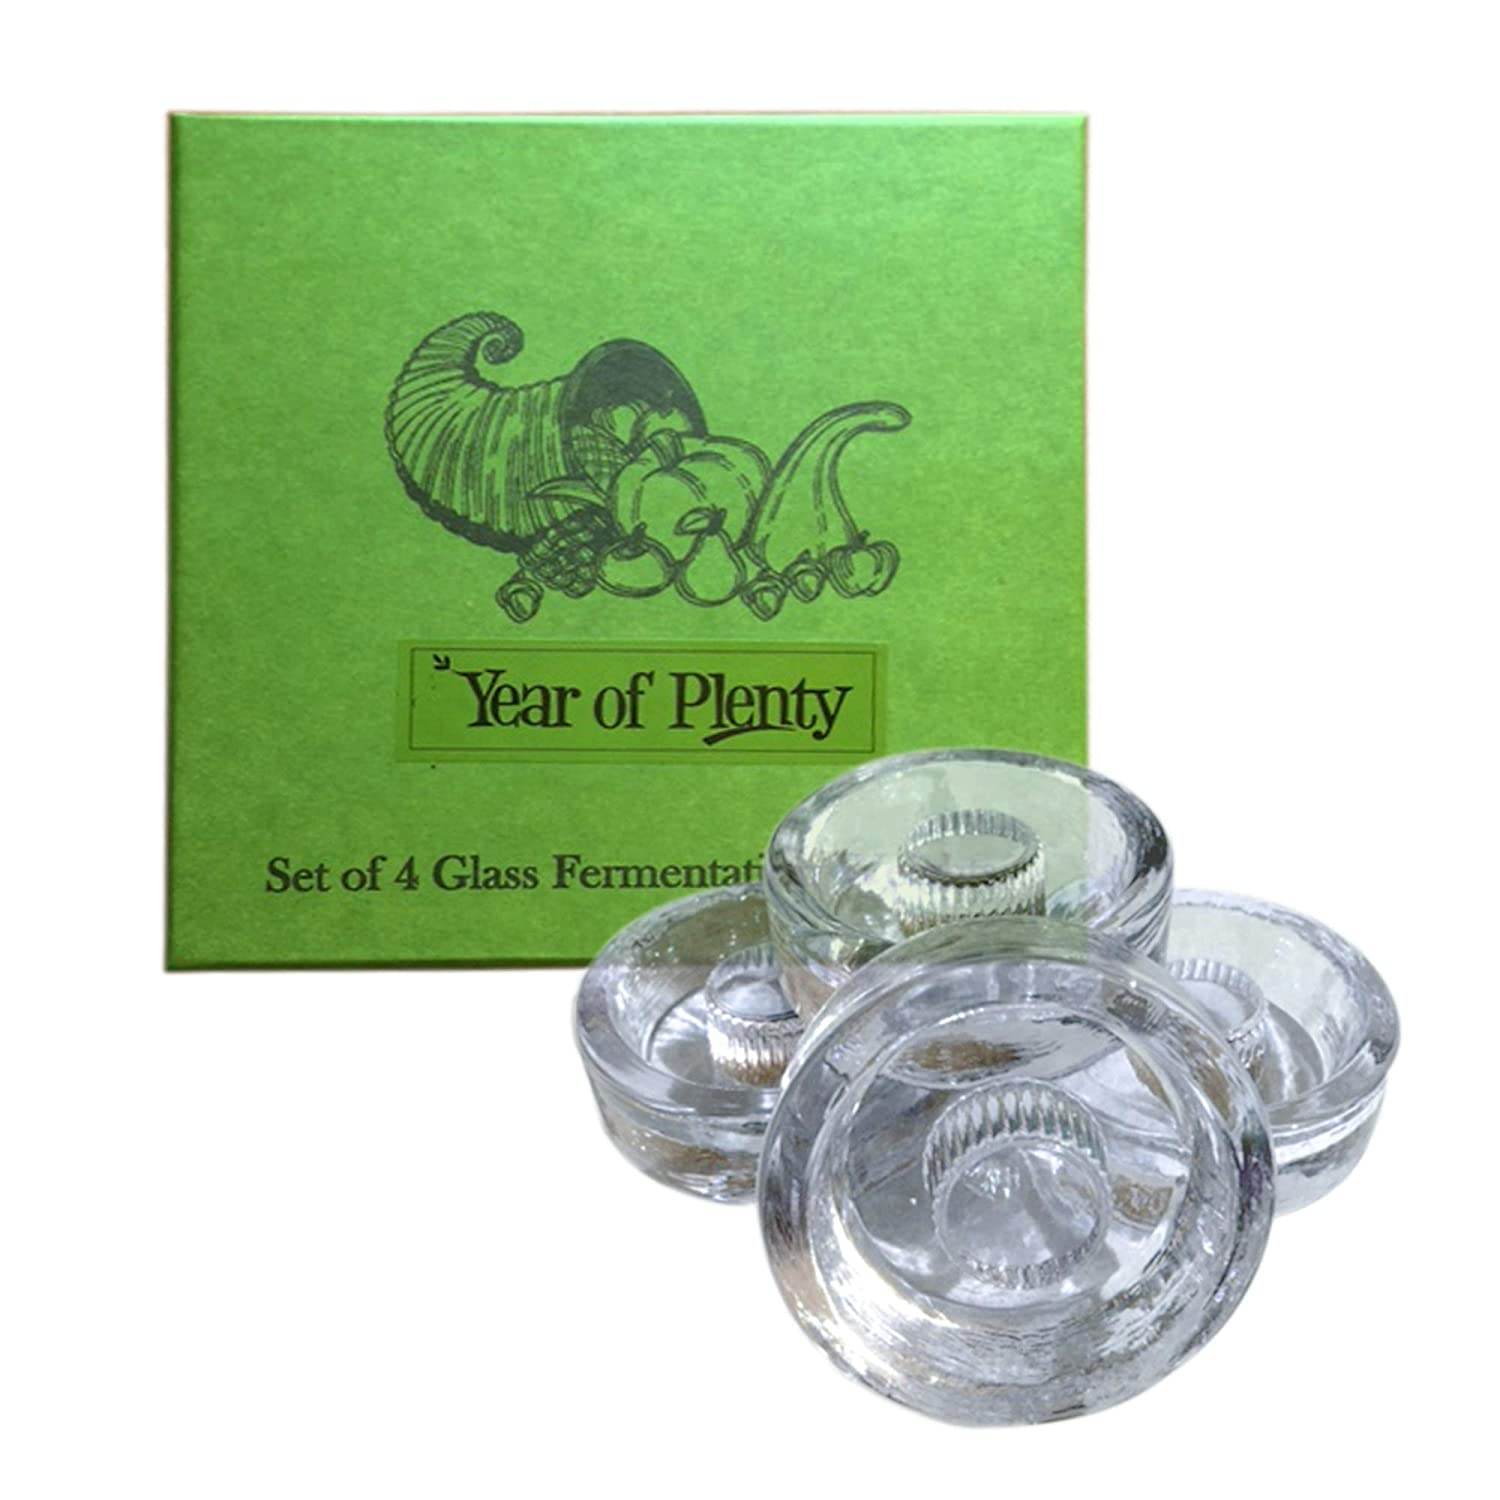 Year of Plenty Fermentation Weights - NonSlip Grip Handle - for Fermenting Sauerkraut, Pickles, Kimchi in Wide Mouth Mason Jars - Lead/Cadmium Free - (Set of 4) 4ButtonGripUS